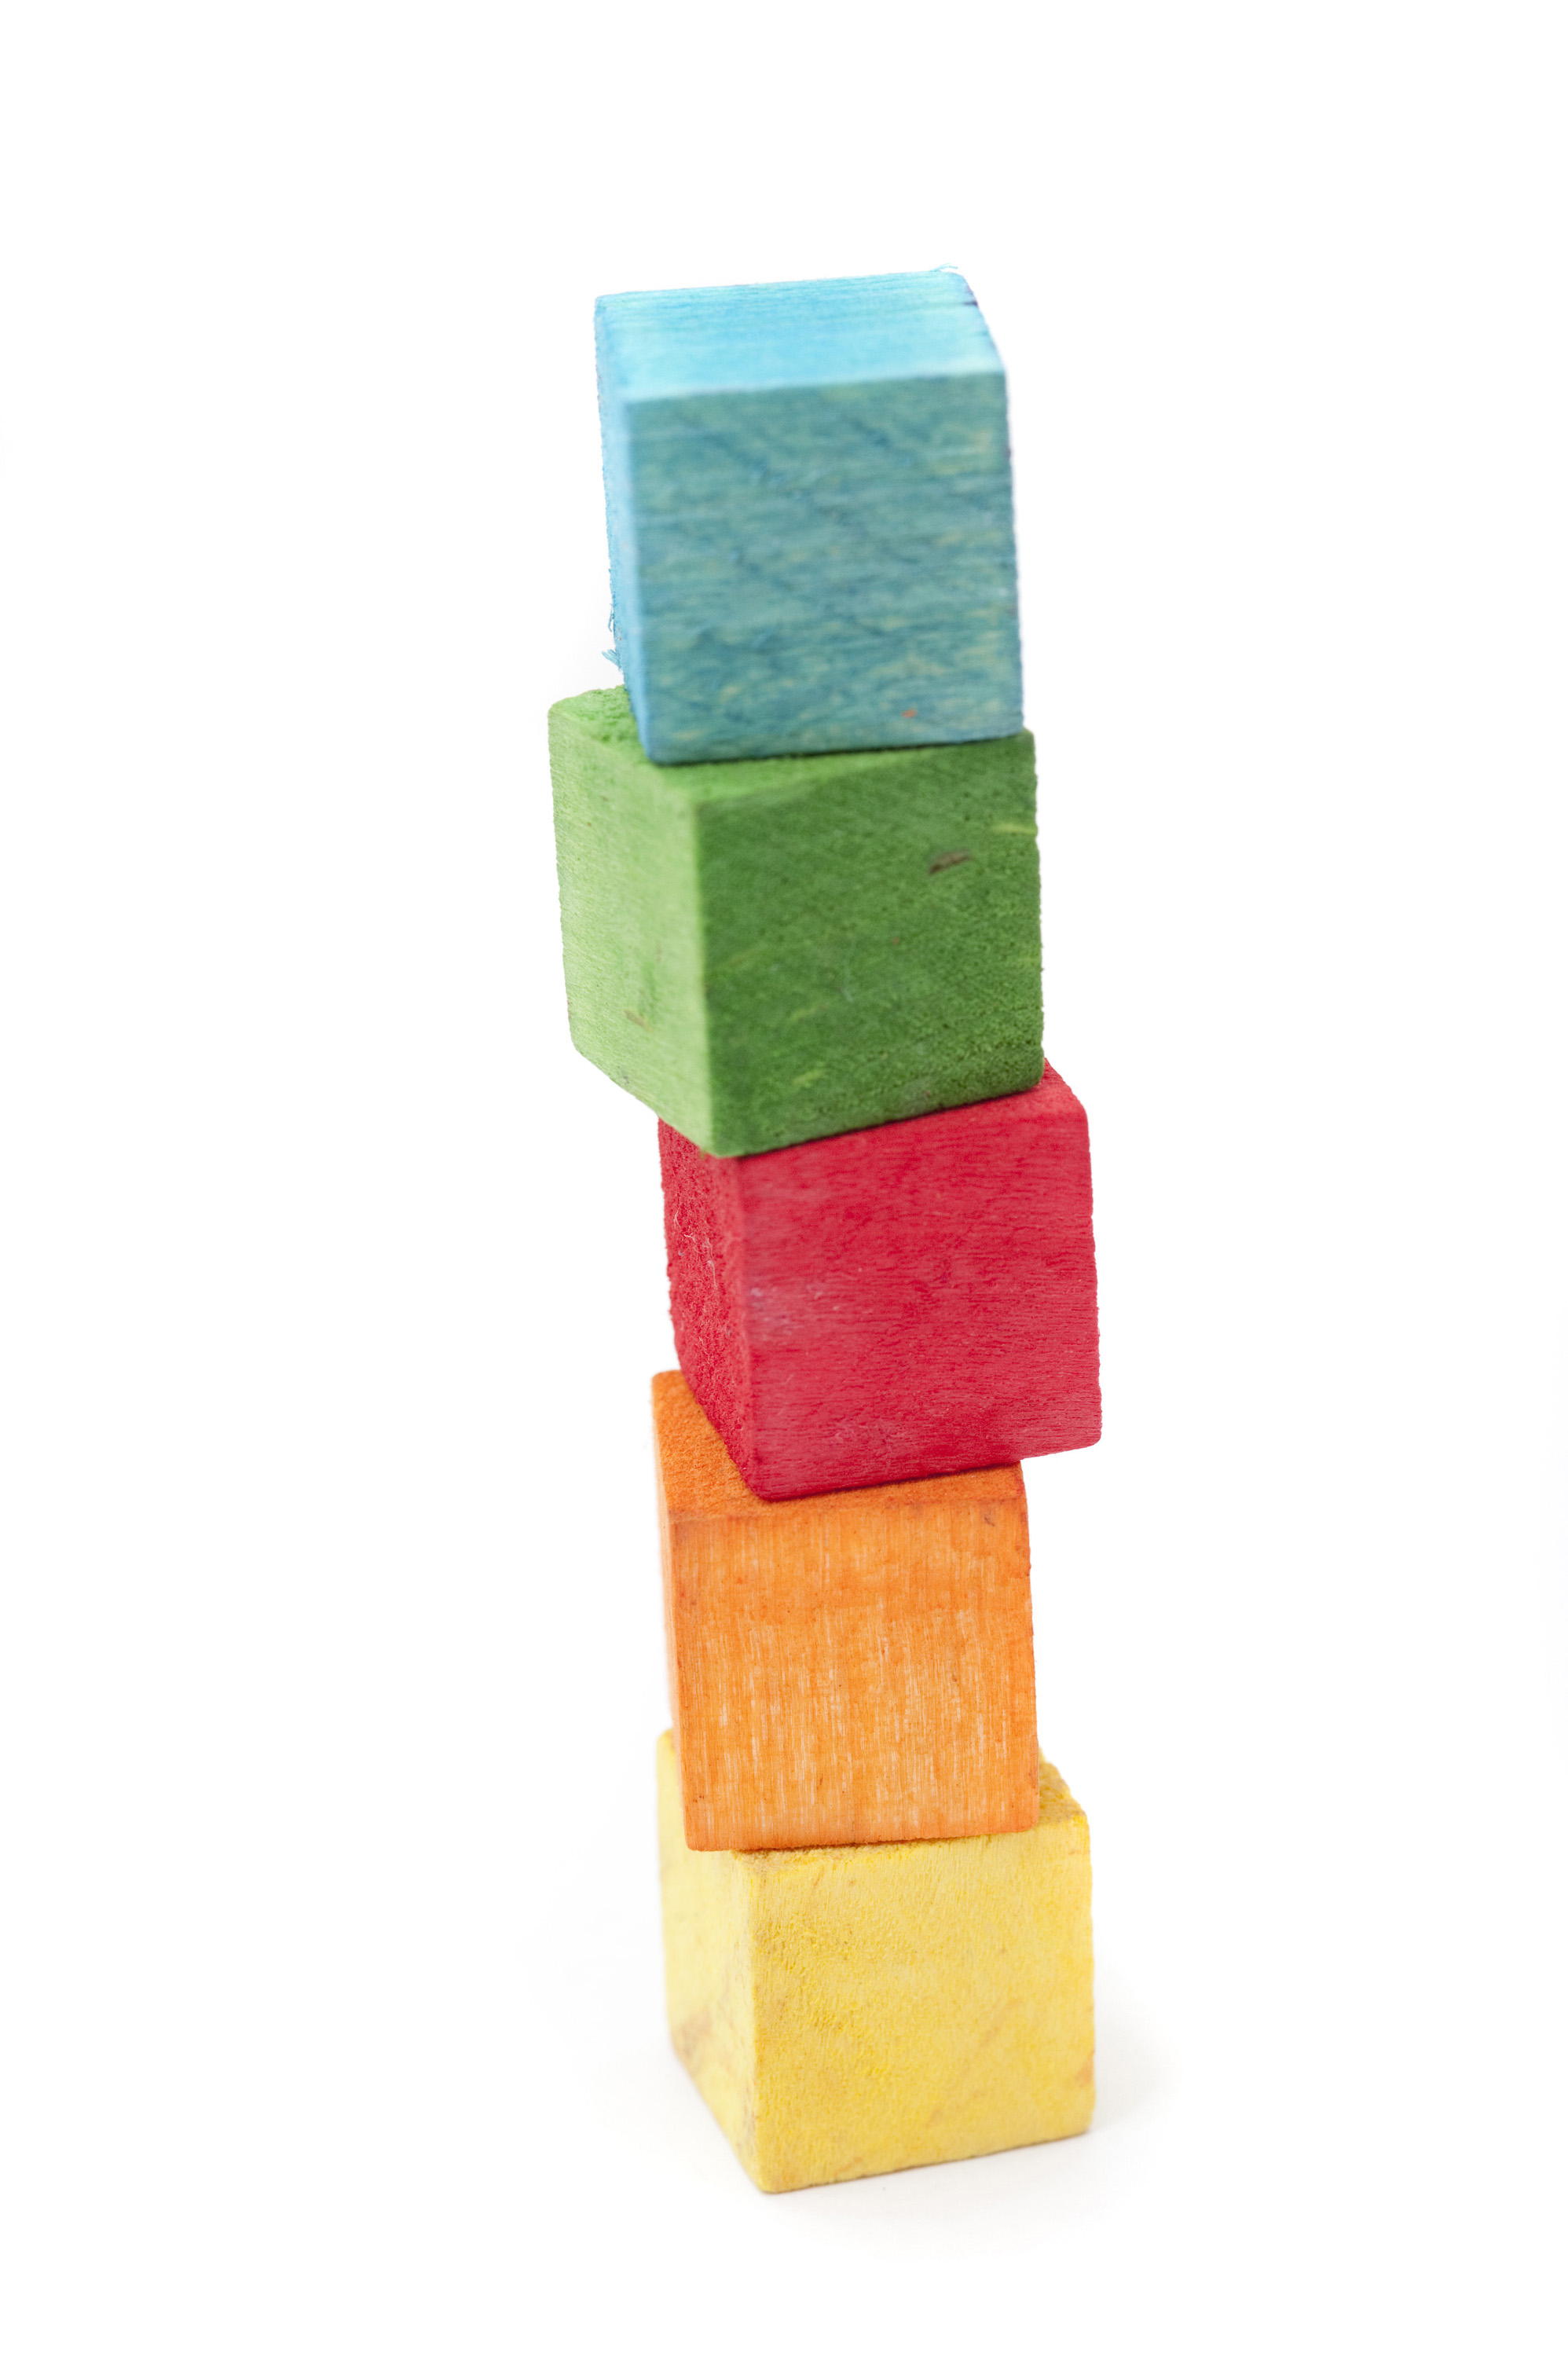 Free image of A tower of wooden building blocks.